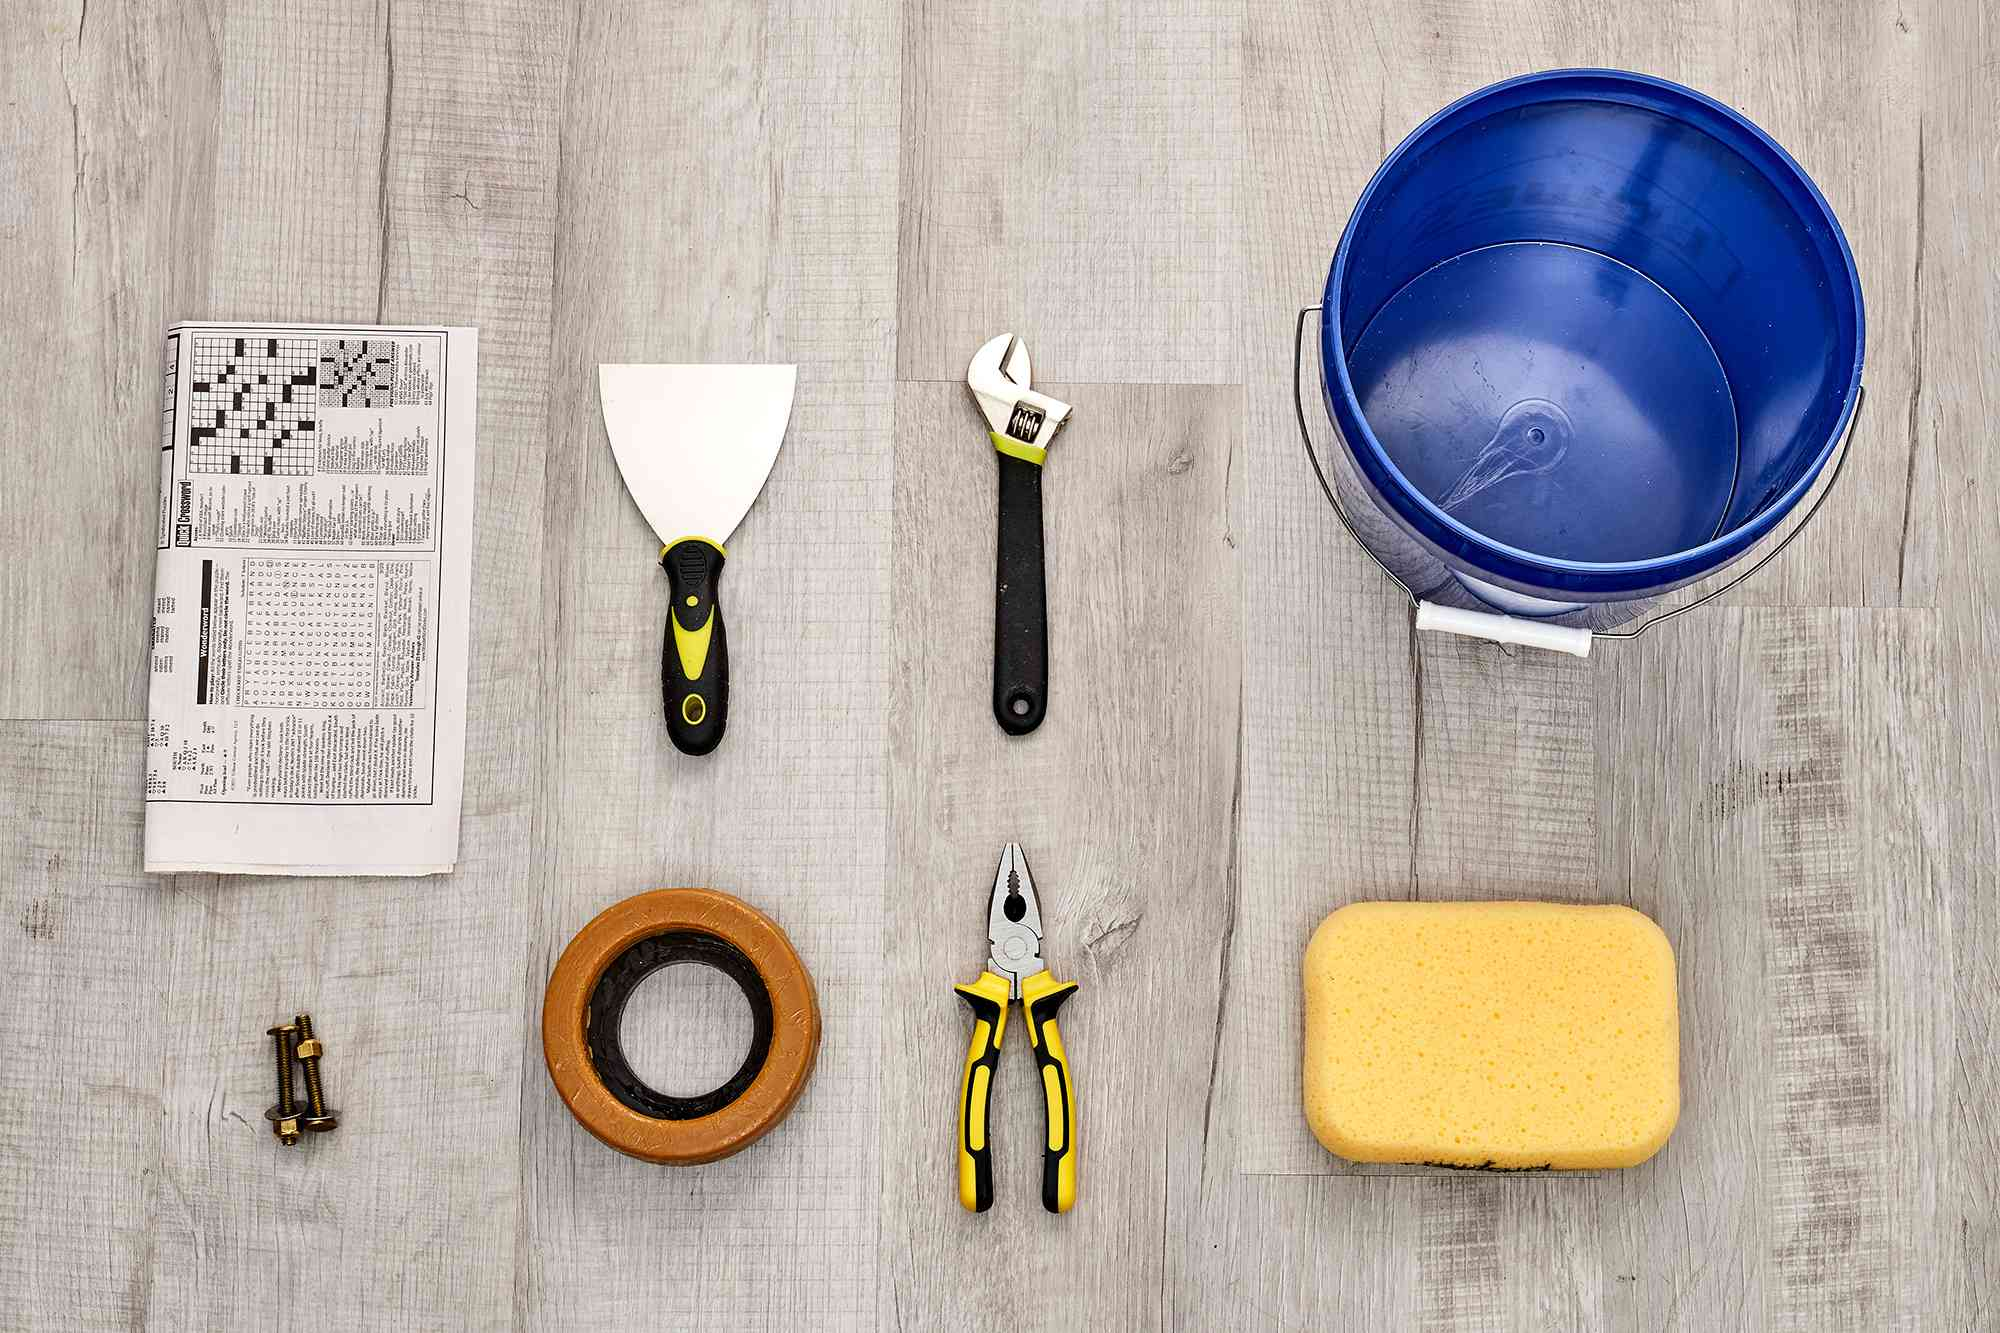 Materials and tools to reset a toilet